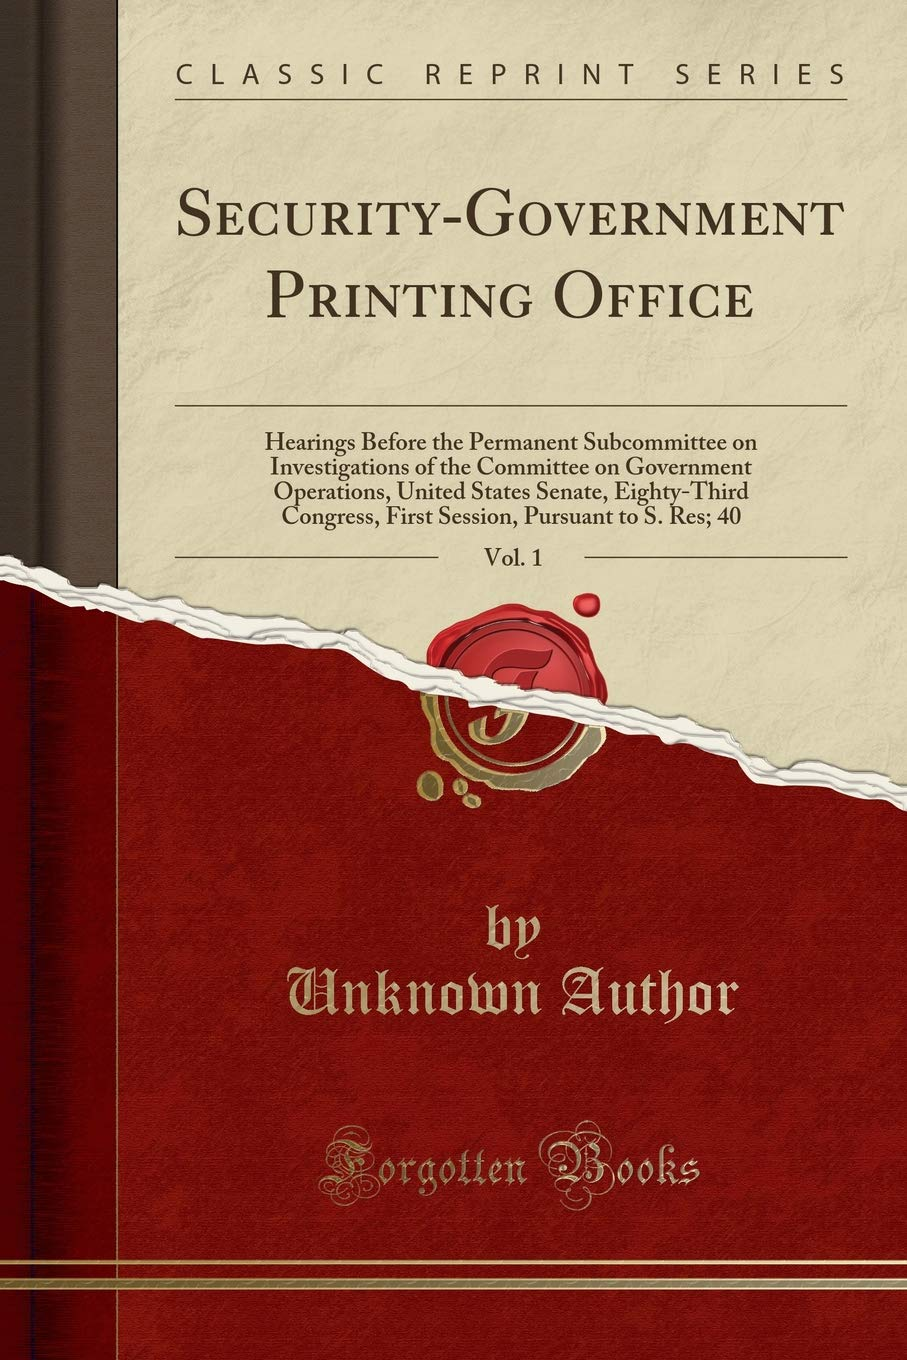 Security-Government Printing Office, Vol. 1: Hearings Before the Permanent Subcommittee on Investigations of the Committee on Government Operations, ... Pursuant to S. Res; 40 (Classic Reprint) pdf epub